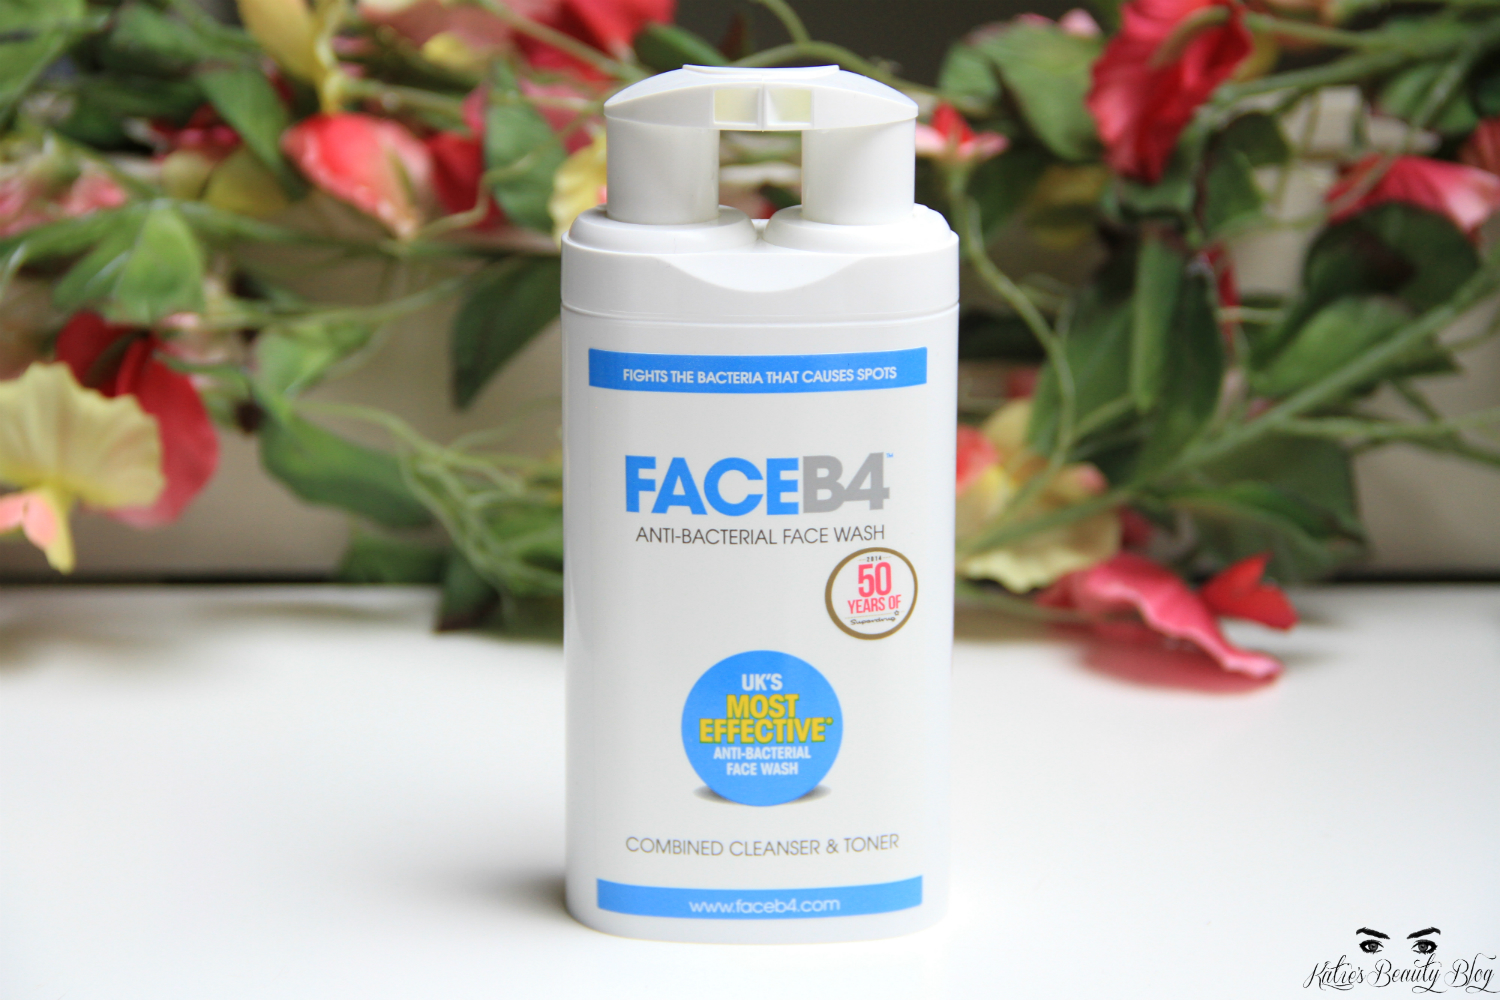 My review of Face B4 Face Wash & Serum